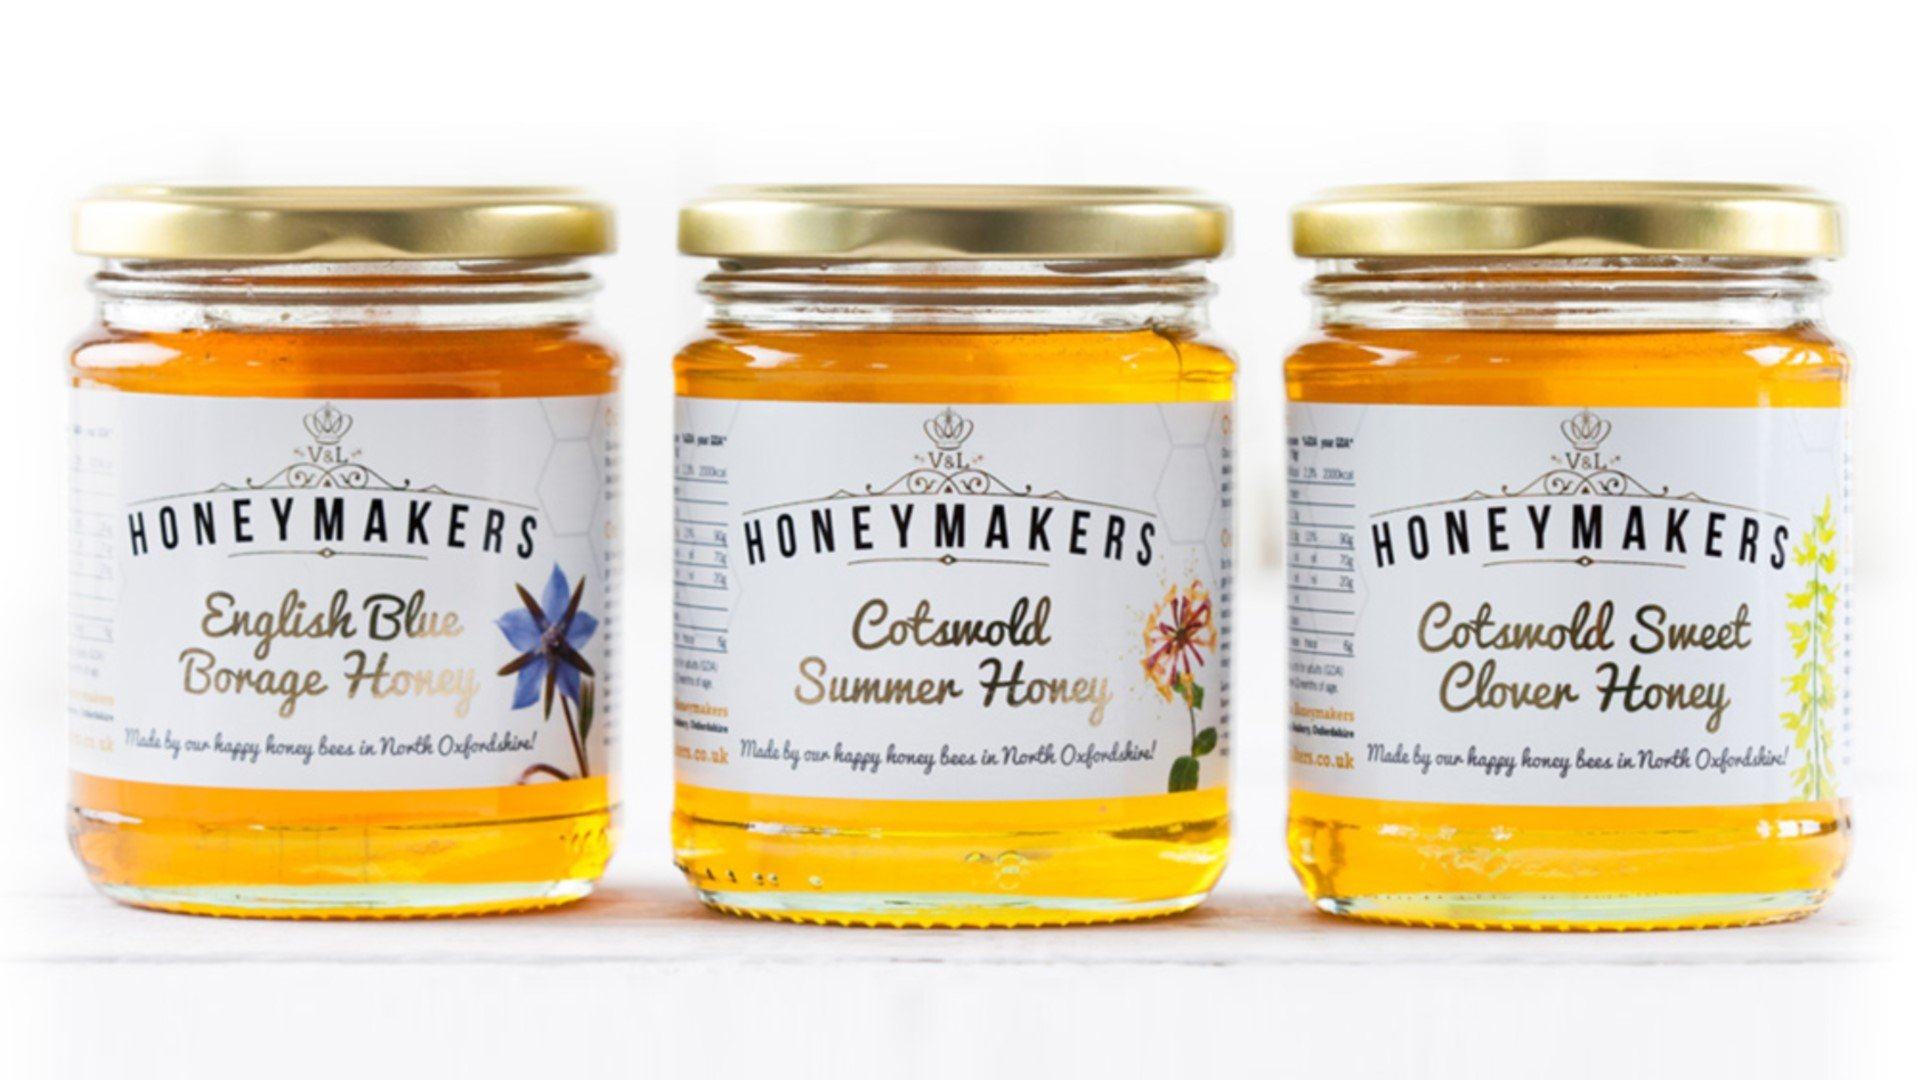 V&L Honeymakers Oxfordshire Artisan Honey